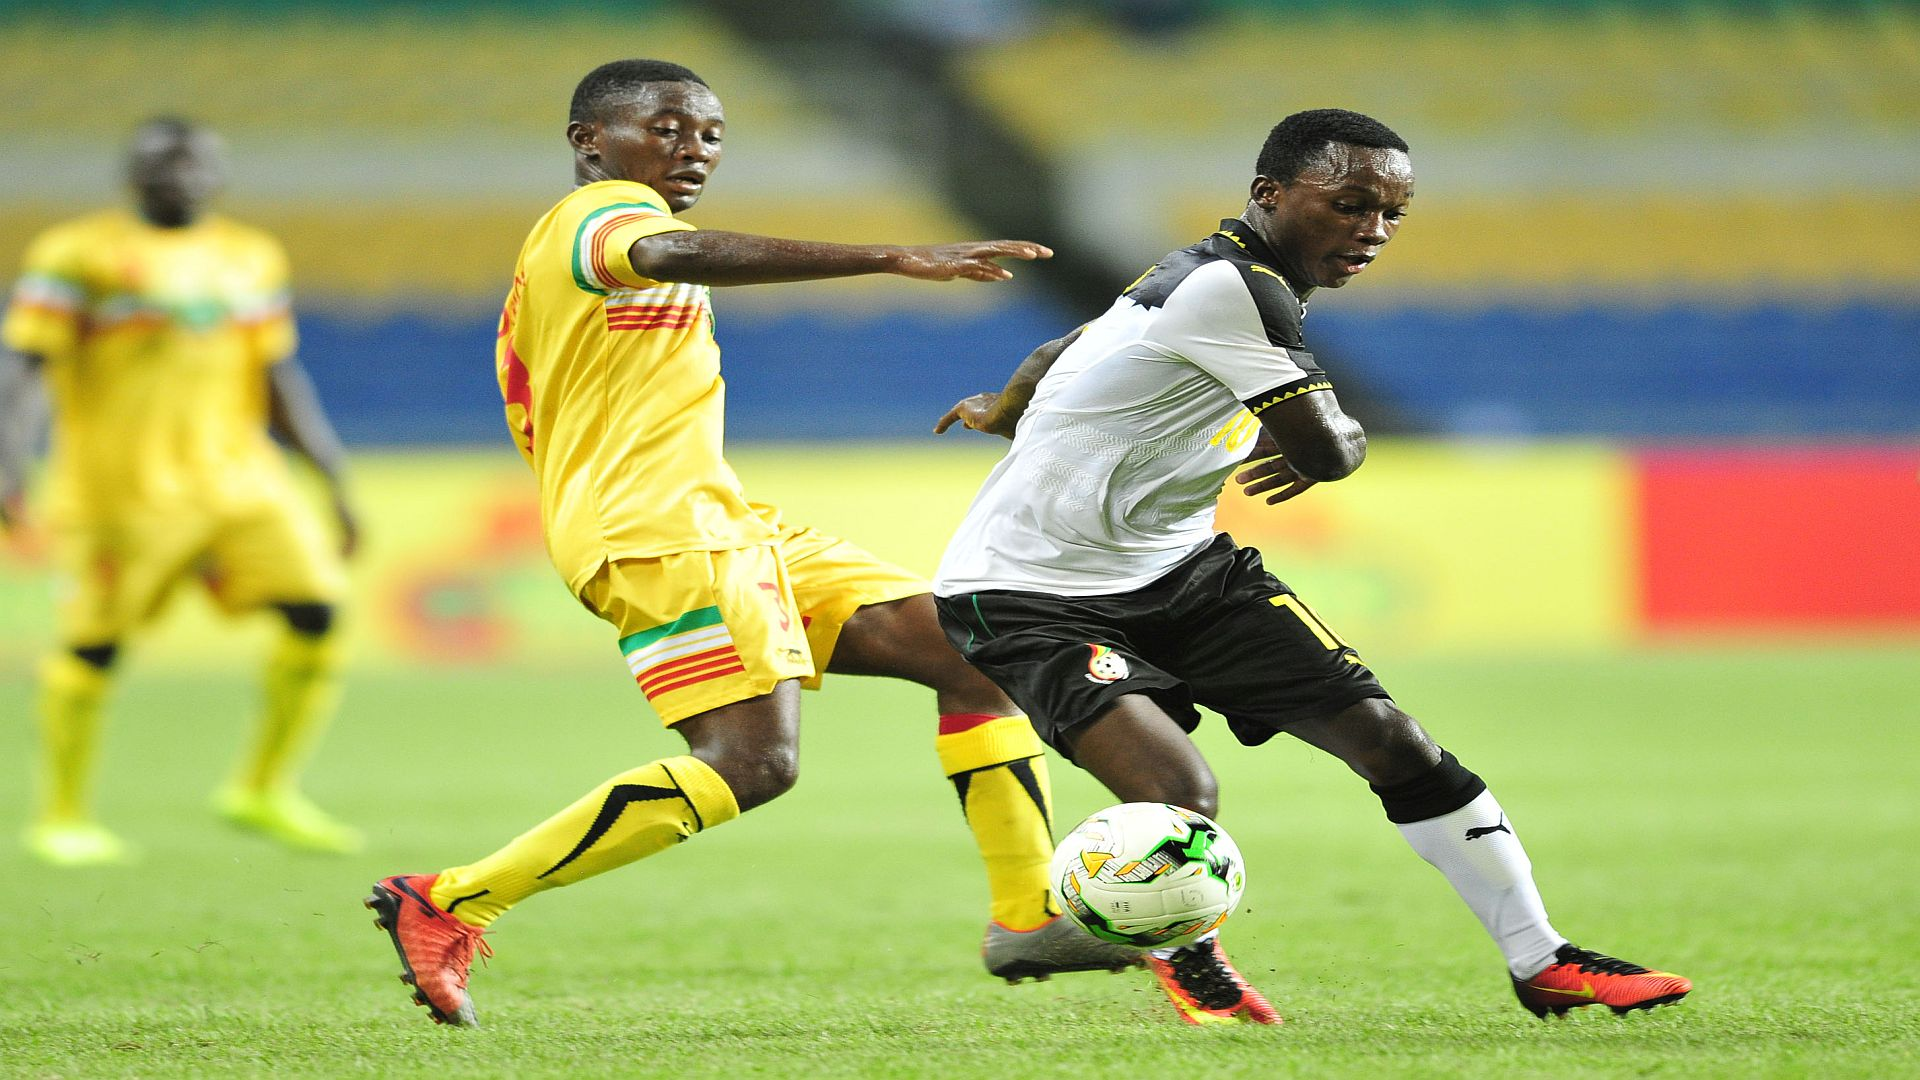 Mali defeats Ghana to win U-17 AFCON